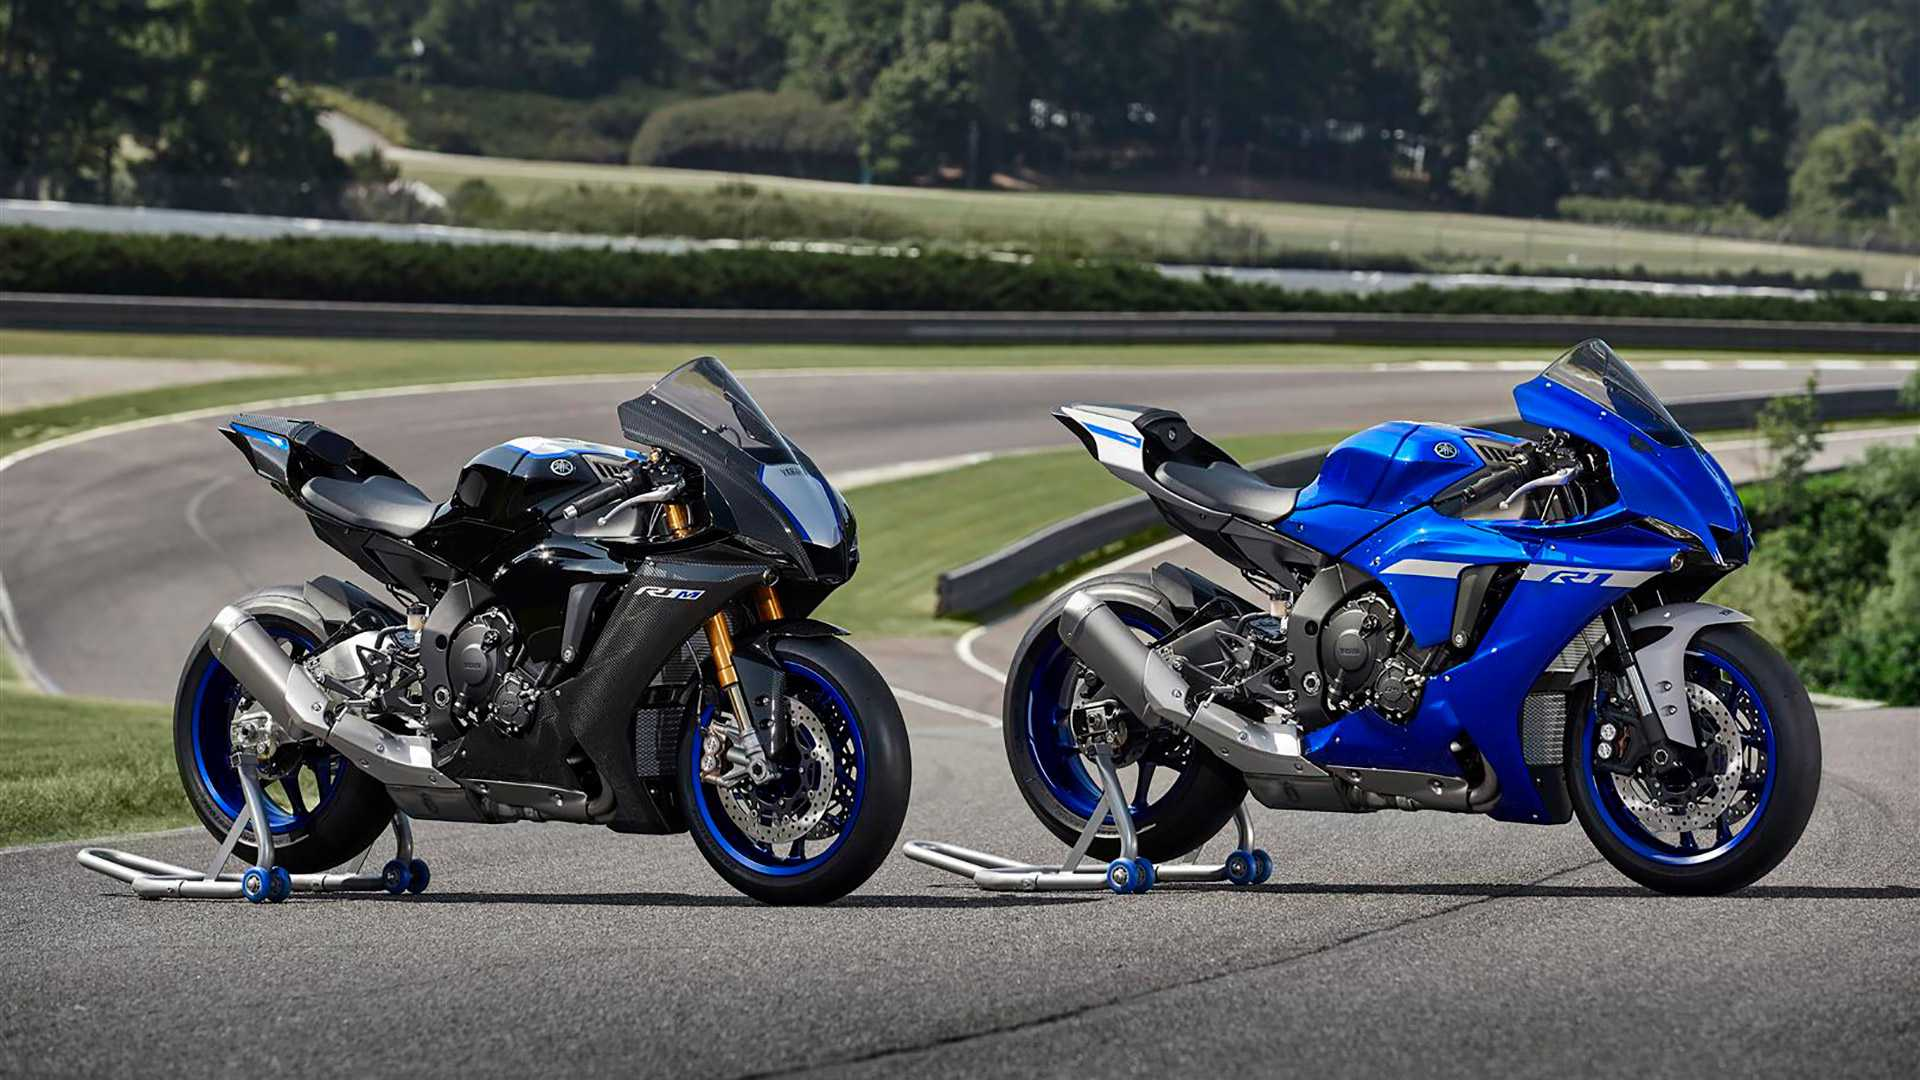 2020 Yamaha Yzf R1 And Yzf R1m Everything We Know